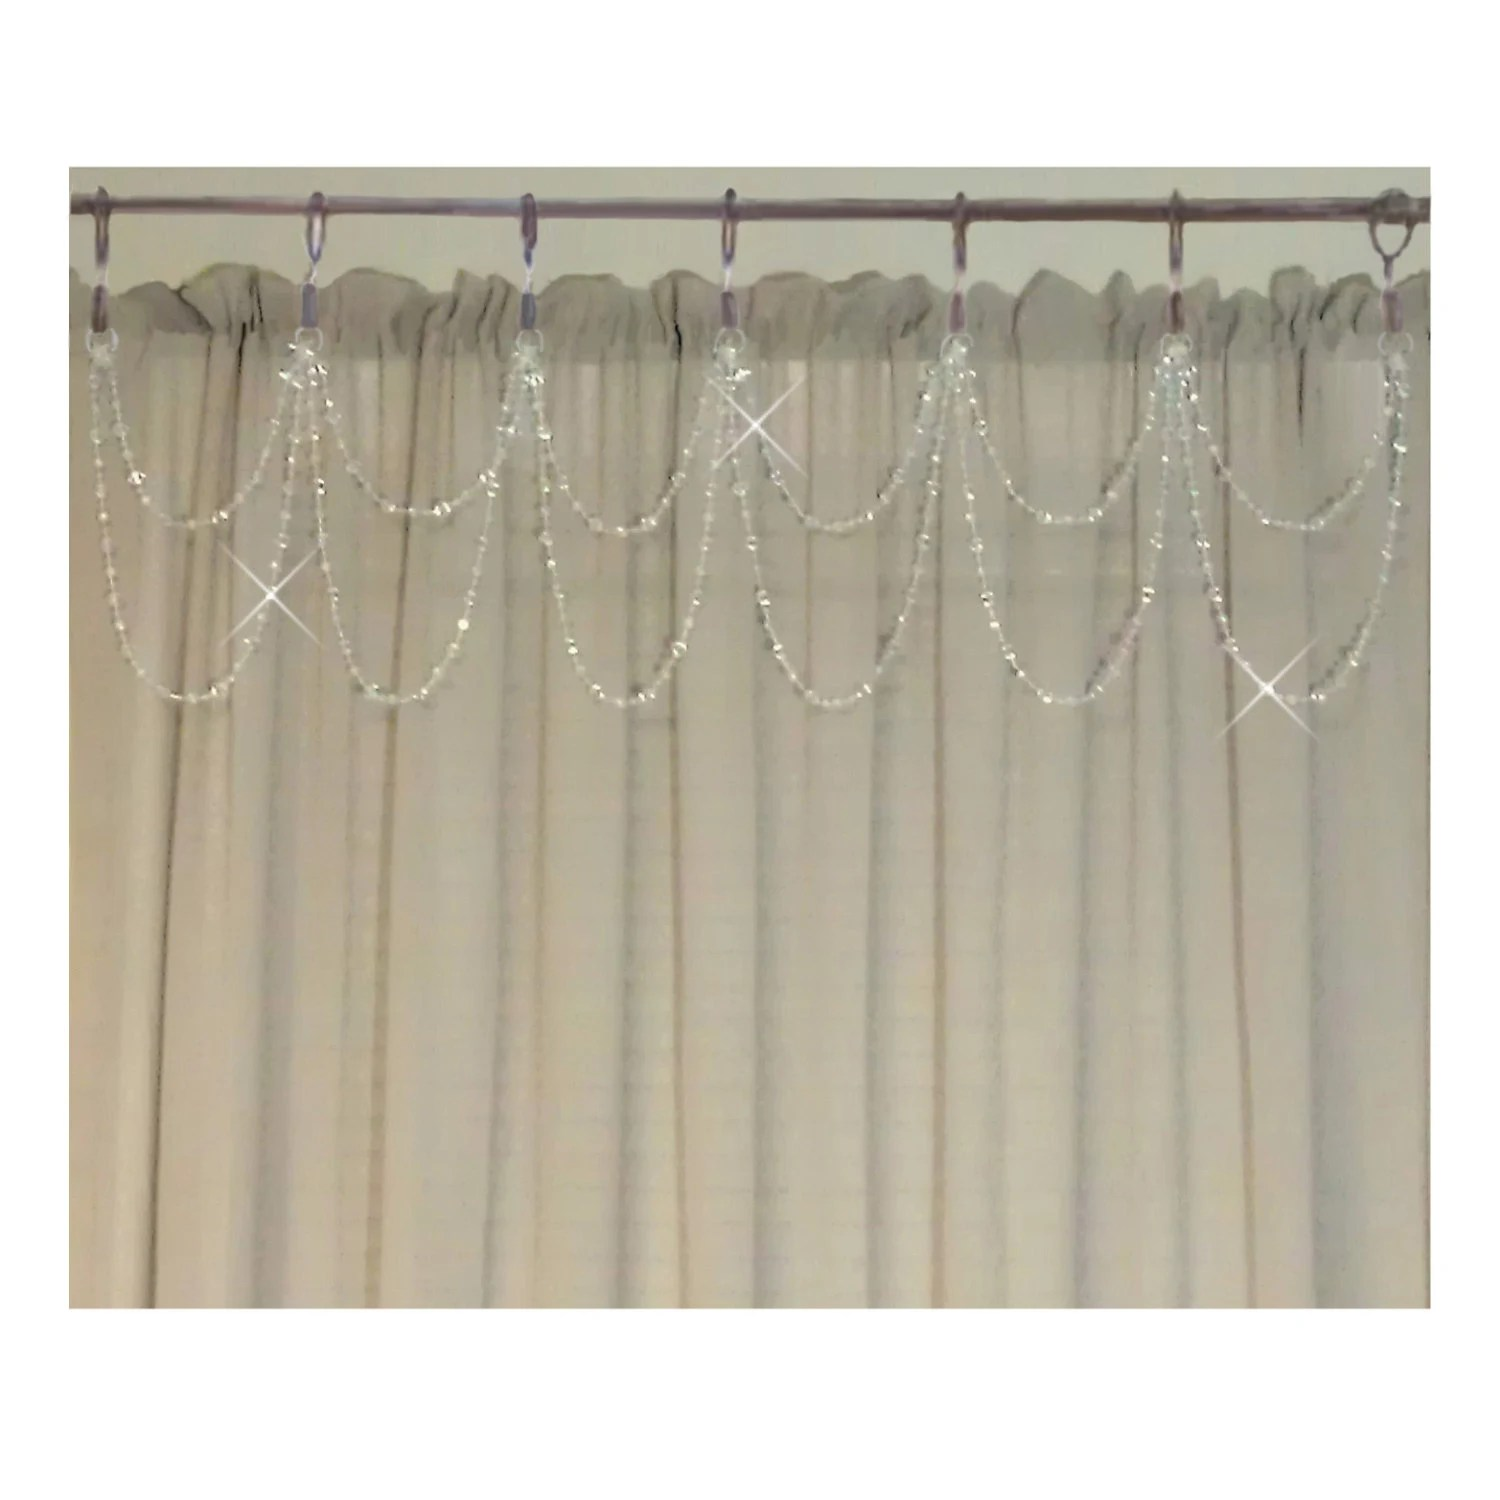 Cafe Curtain Clips Cafe Curtain Drapery Bling Double Swag 7 Star